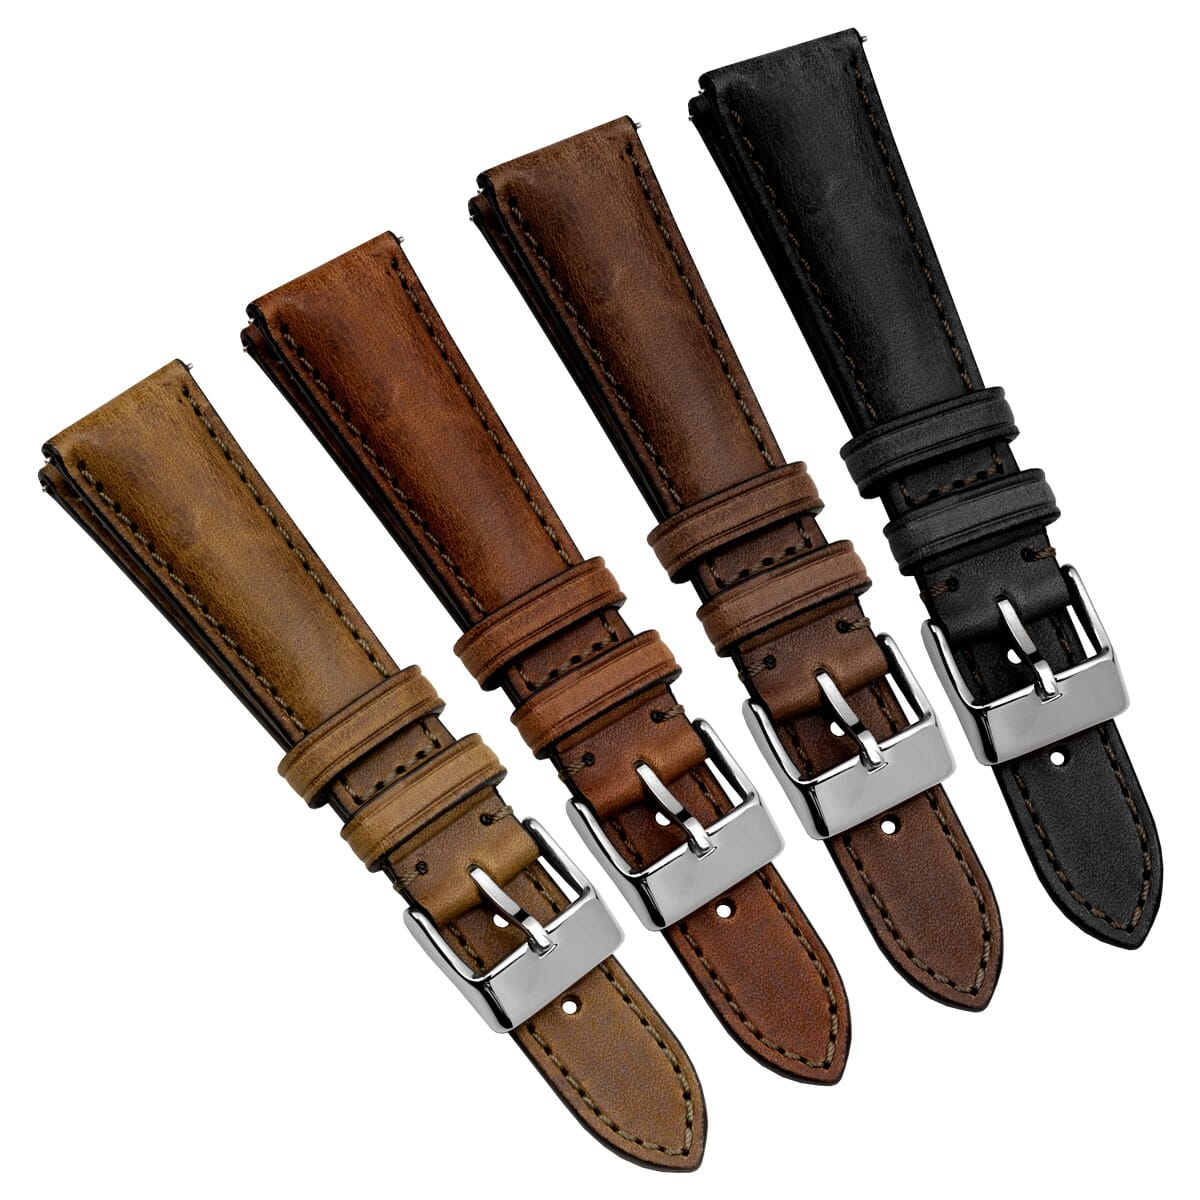 By Popular Demand...  Shorter Length Watch Straps